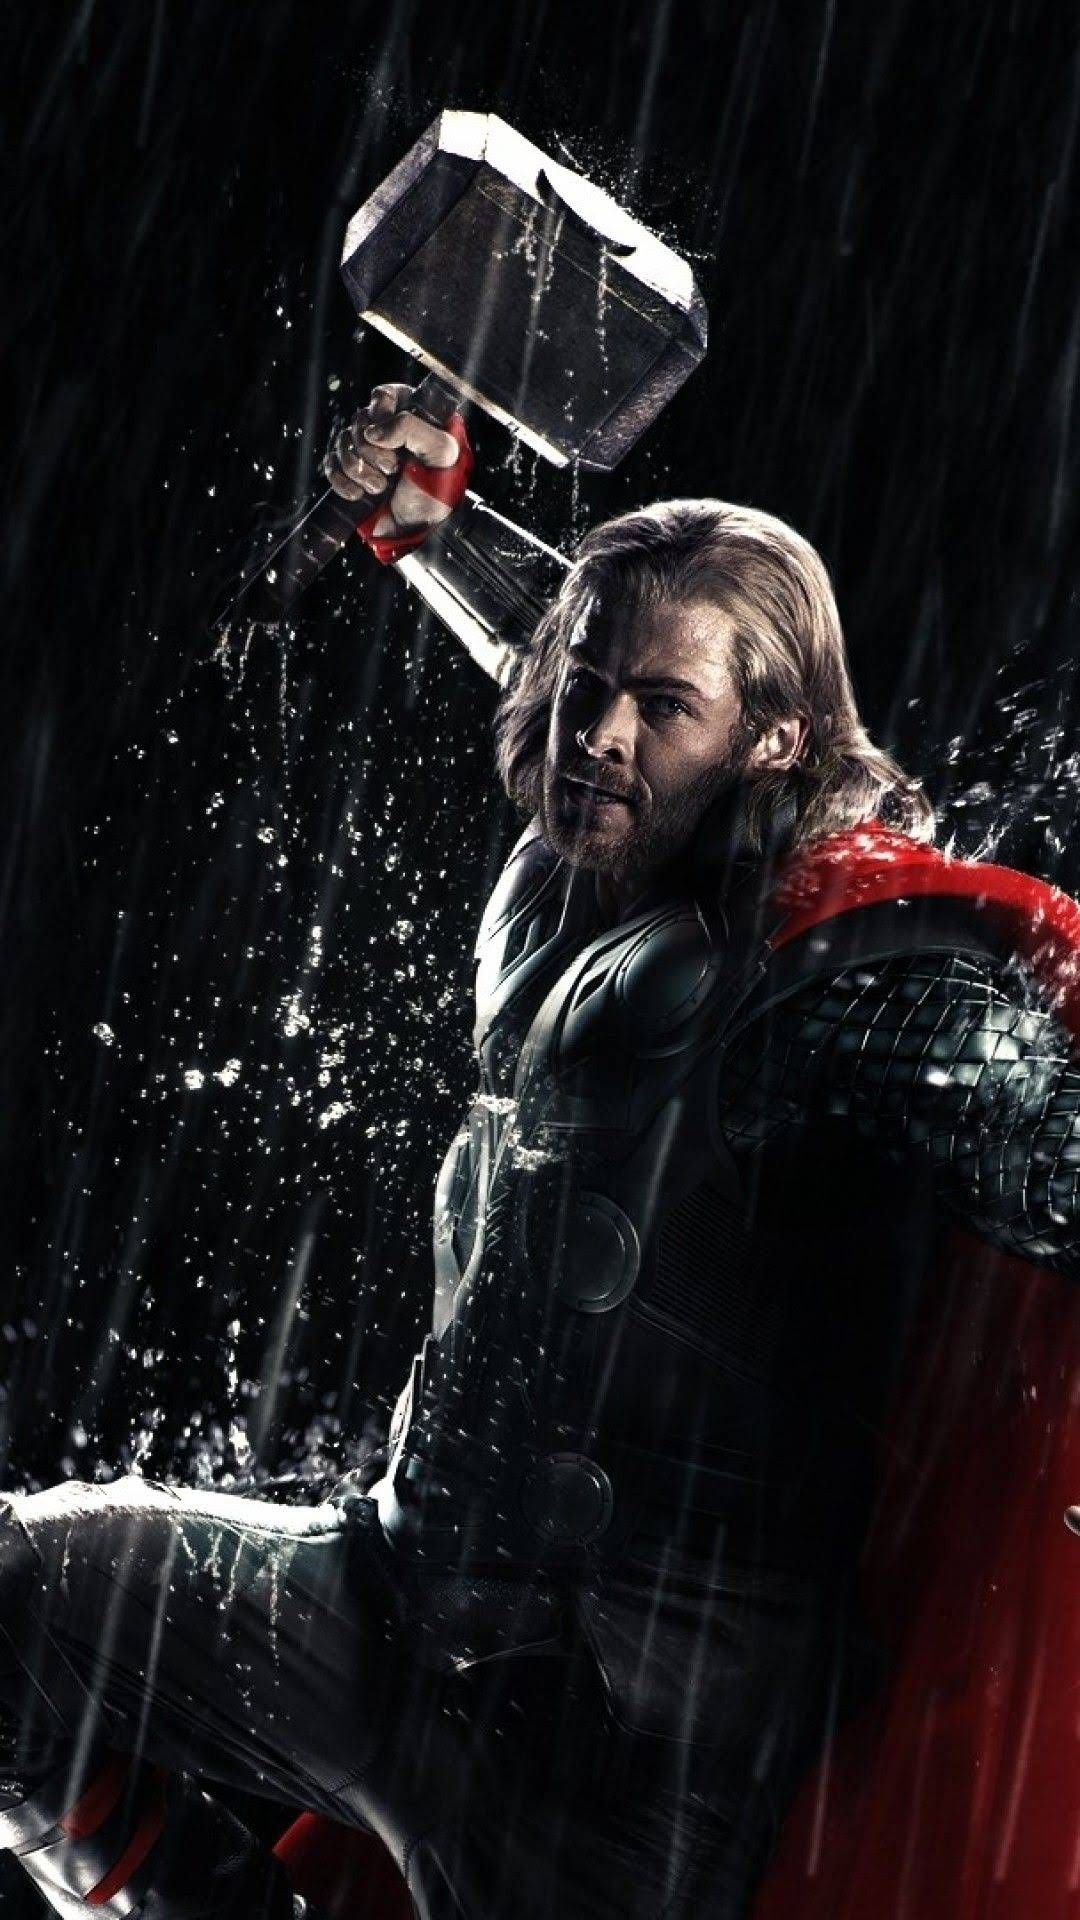 Thor iPhone Wallpaper Download Avengers, Thor, Marvel films